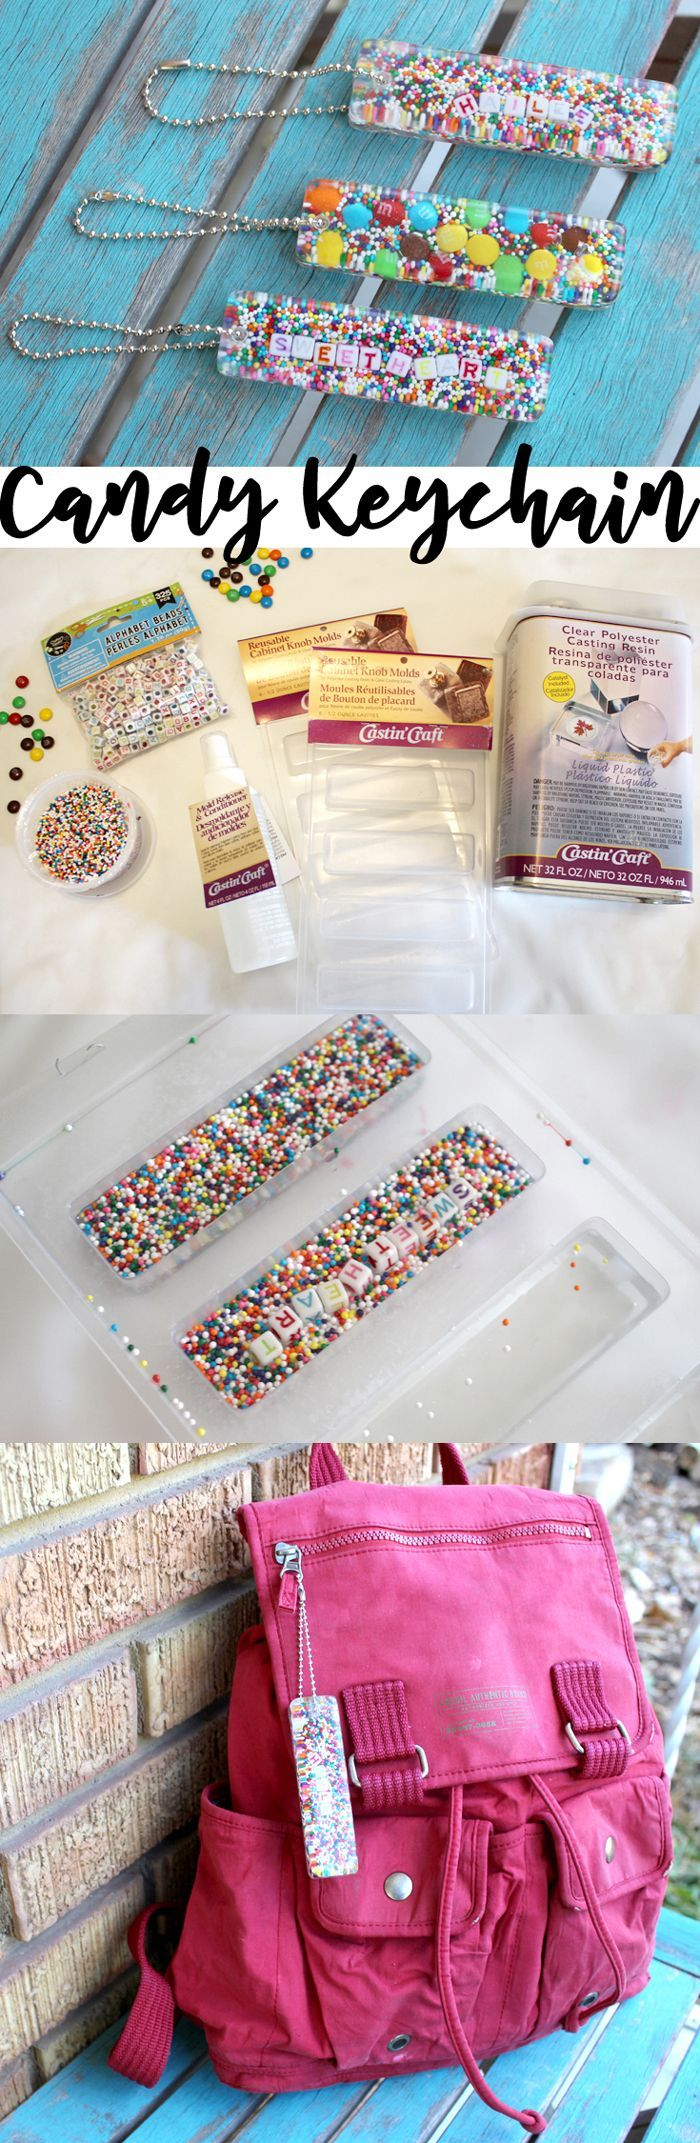 Candy Sprinkles Resin Keychain DIY!  These keychains can be customized and make the perfect handmade gift for the holidays. via @resincraftsblog  Find out #howtomake this #fun and #unique keychain! These keychains make great #giftideas or fun weekend #projects!